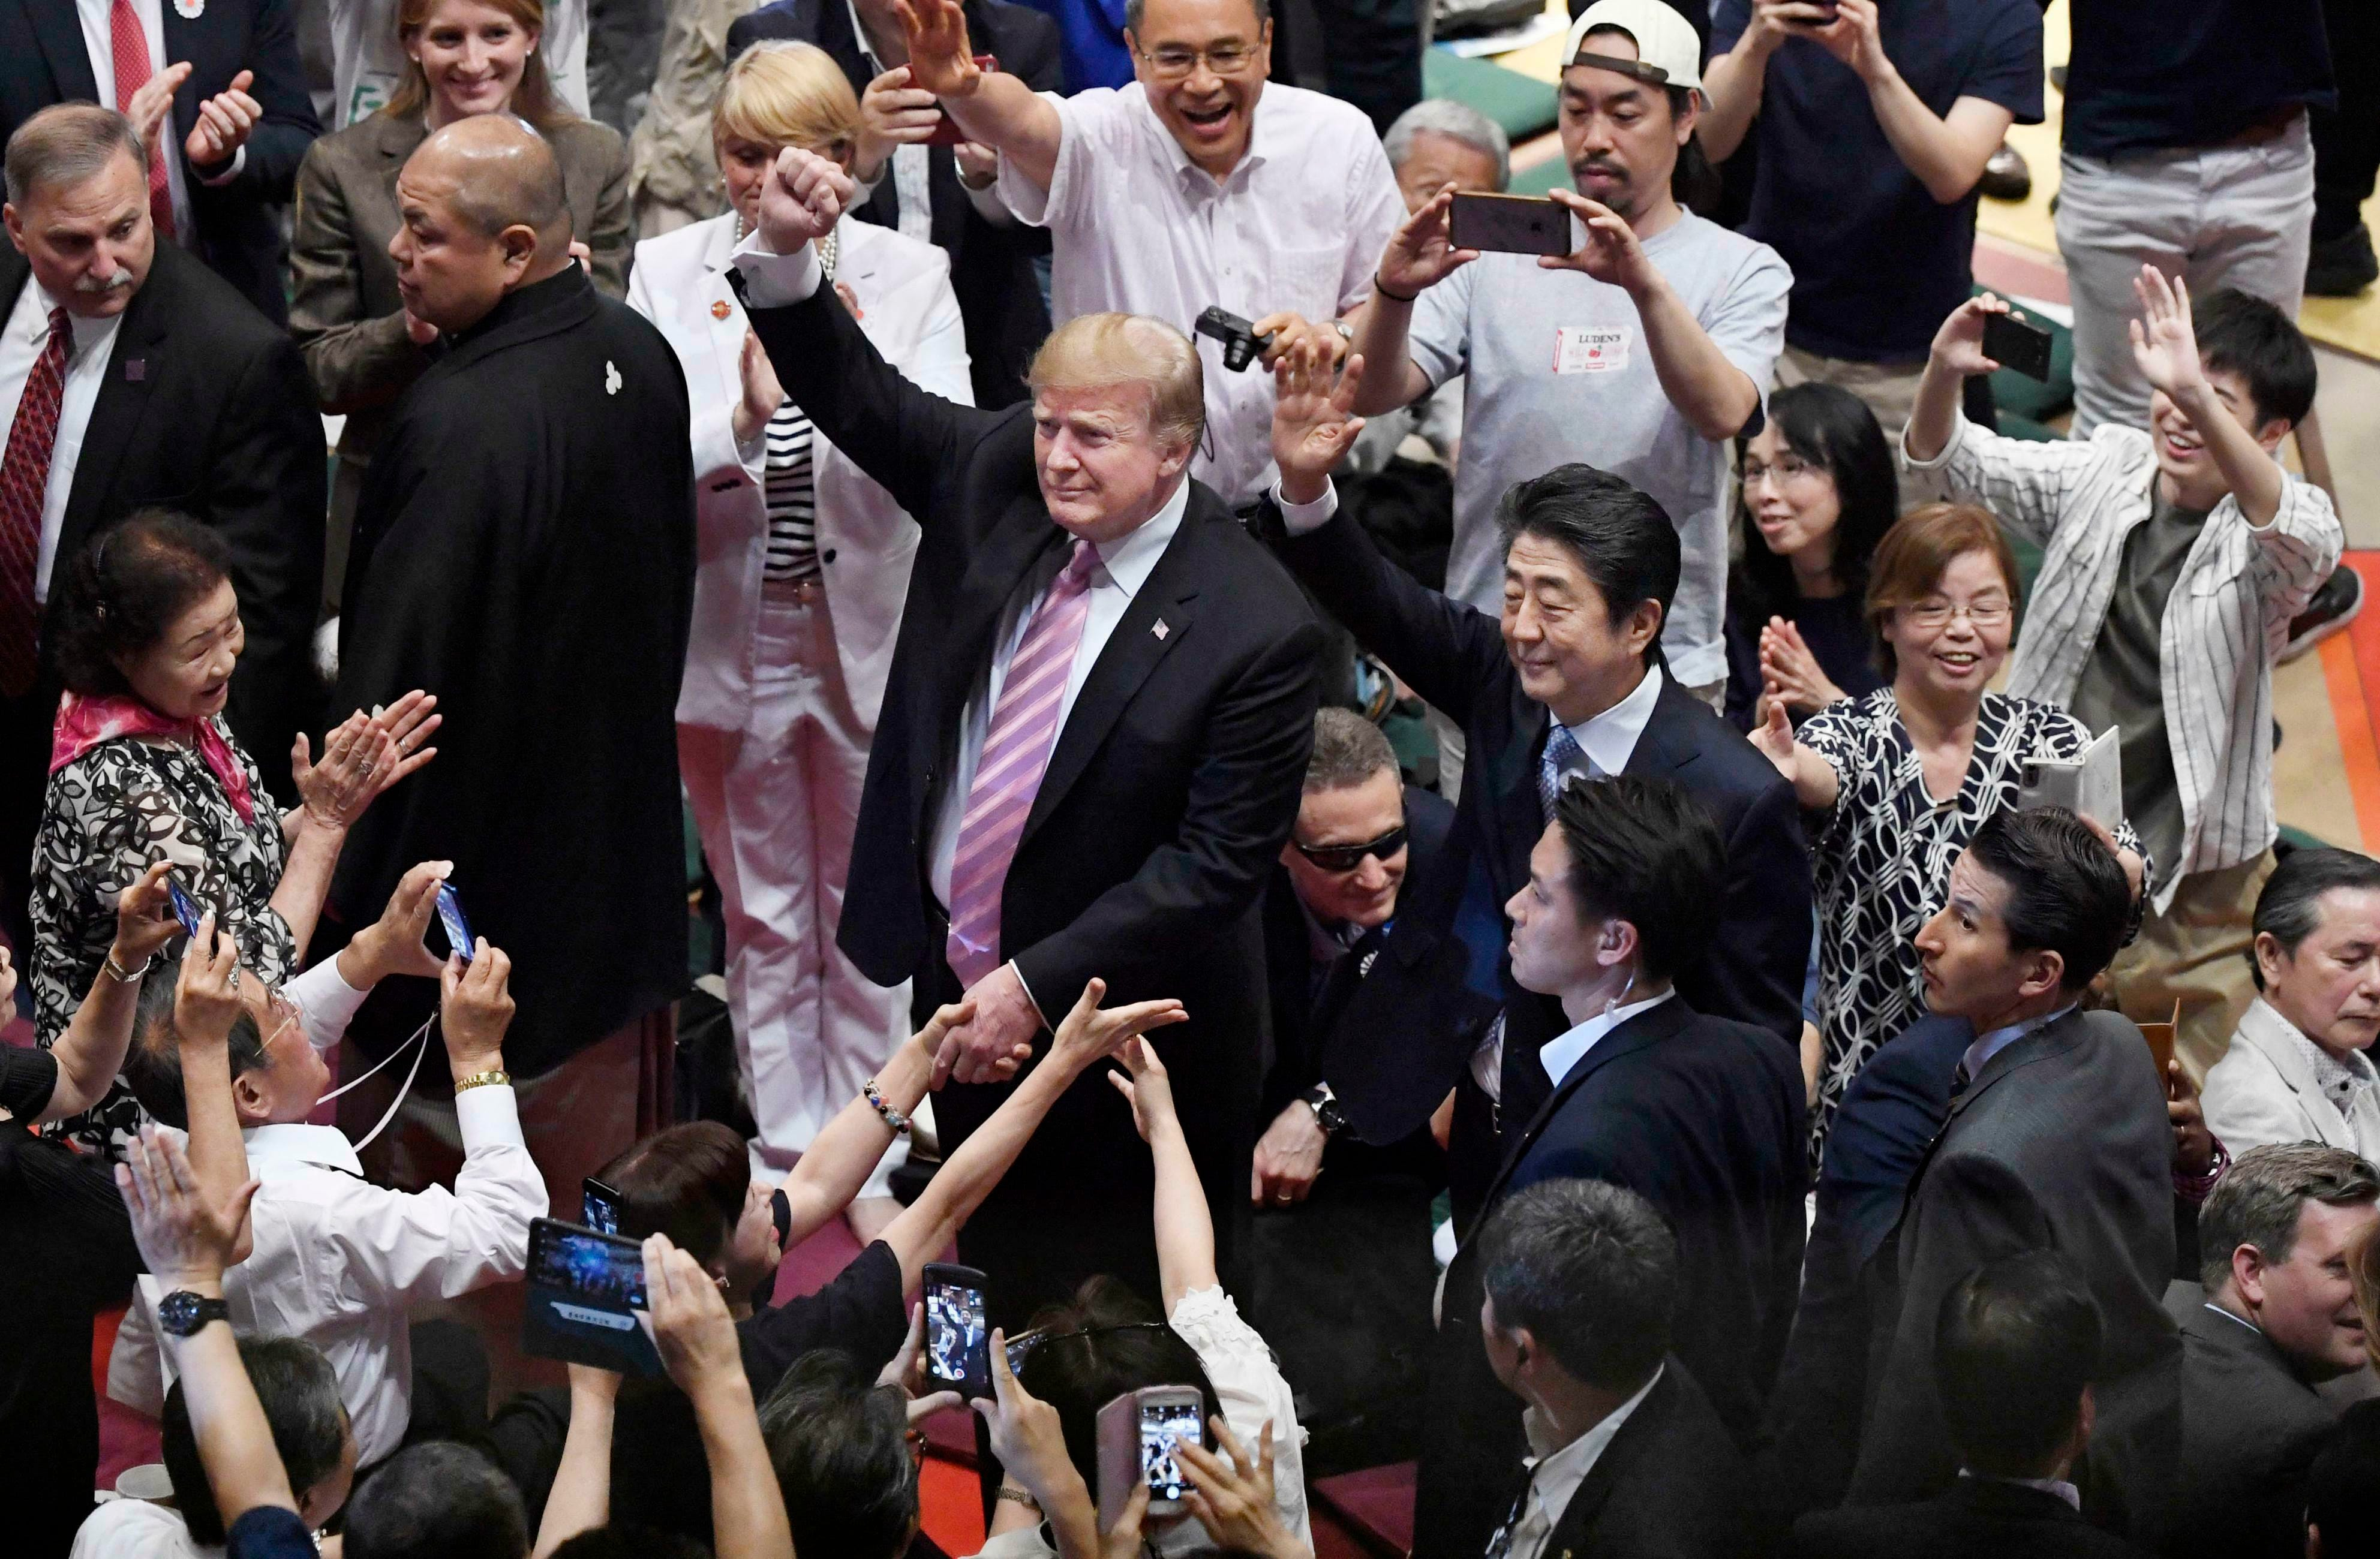 President Trump gives massive trophy to sumo champion in Tokyo, Japan